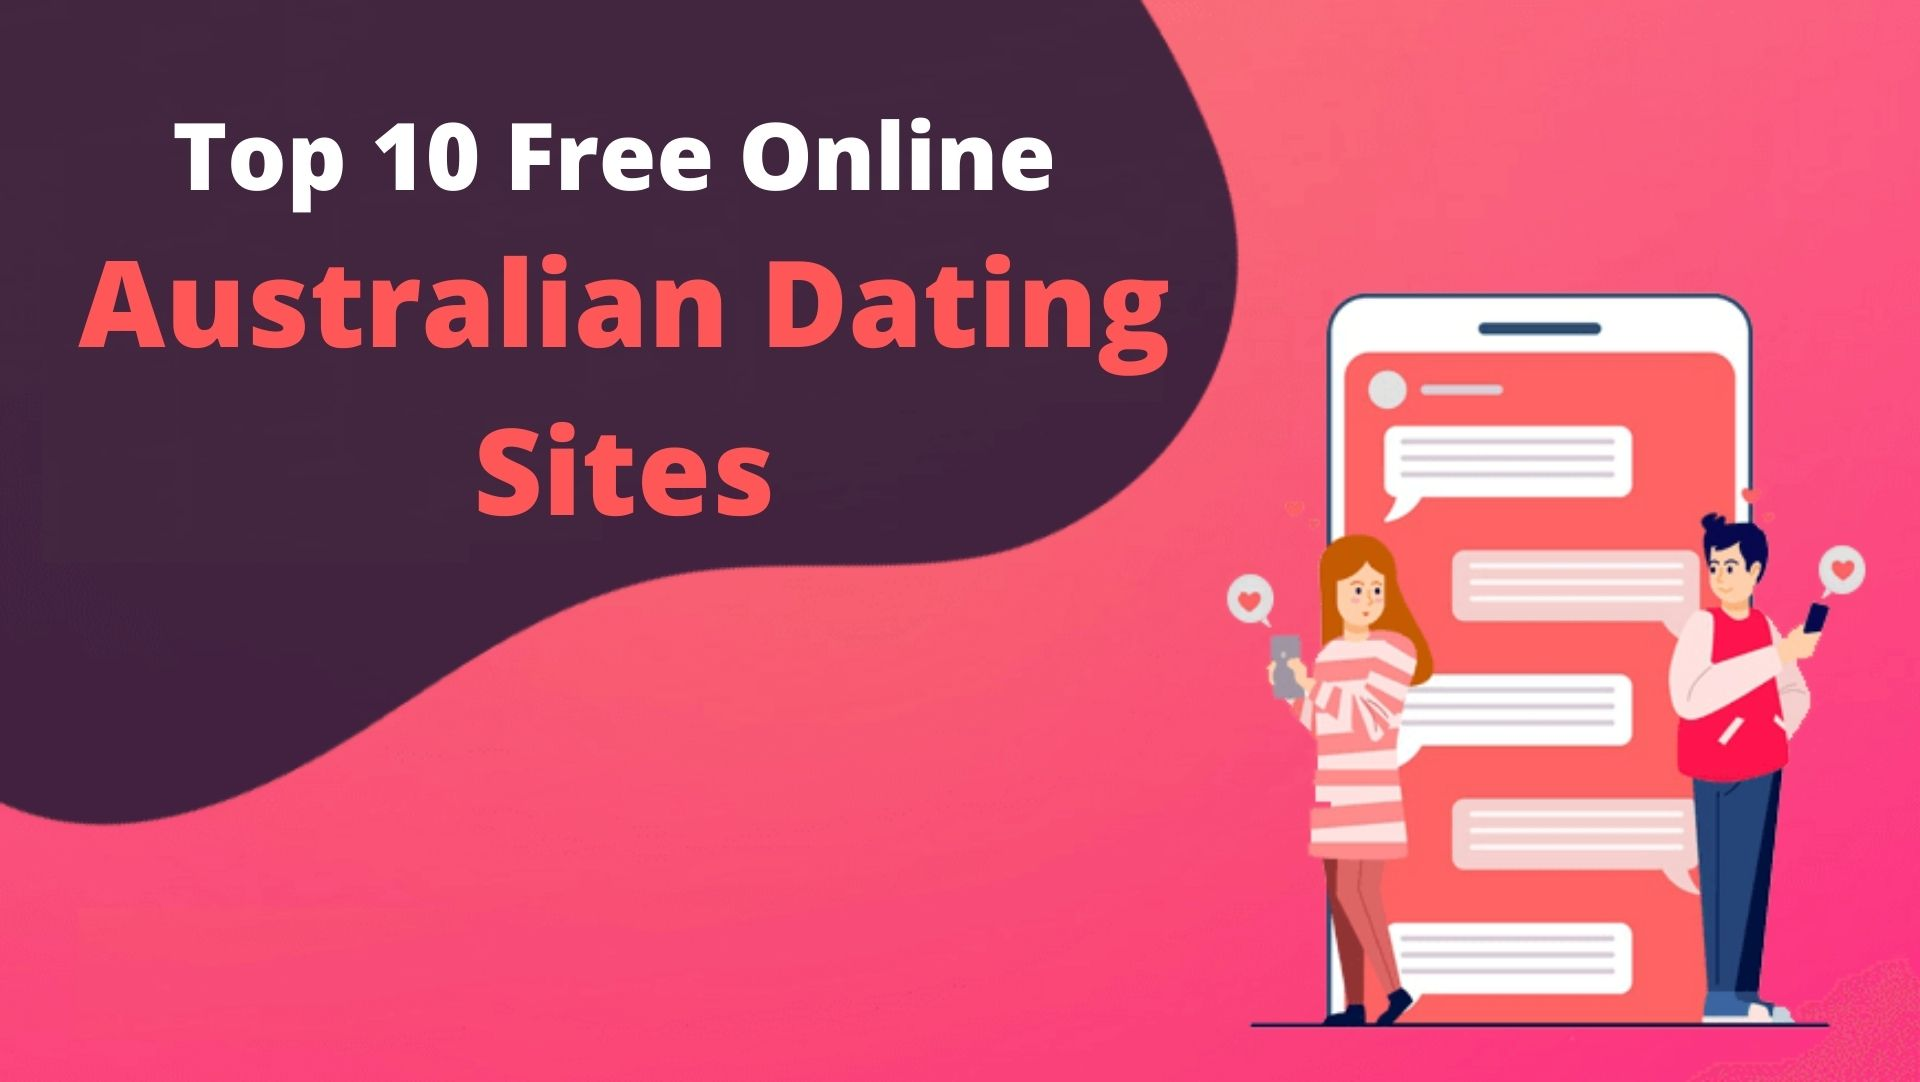 Austrlian Dating Sites